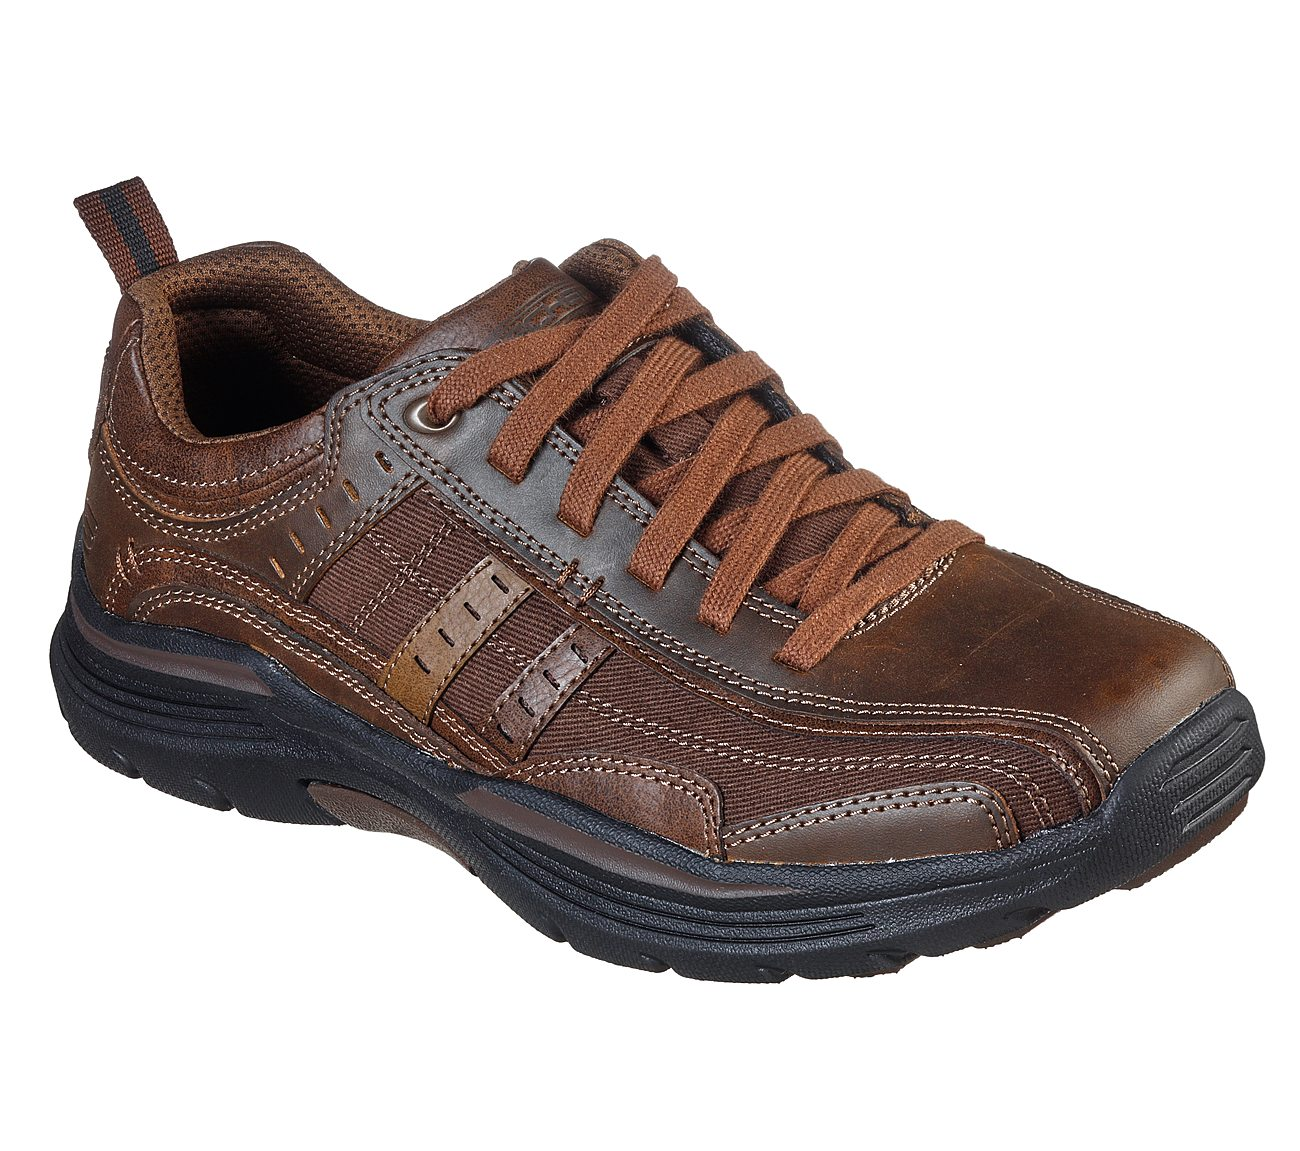 skechers relaxed fit shoes review